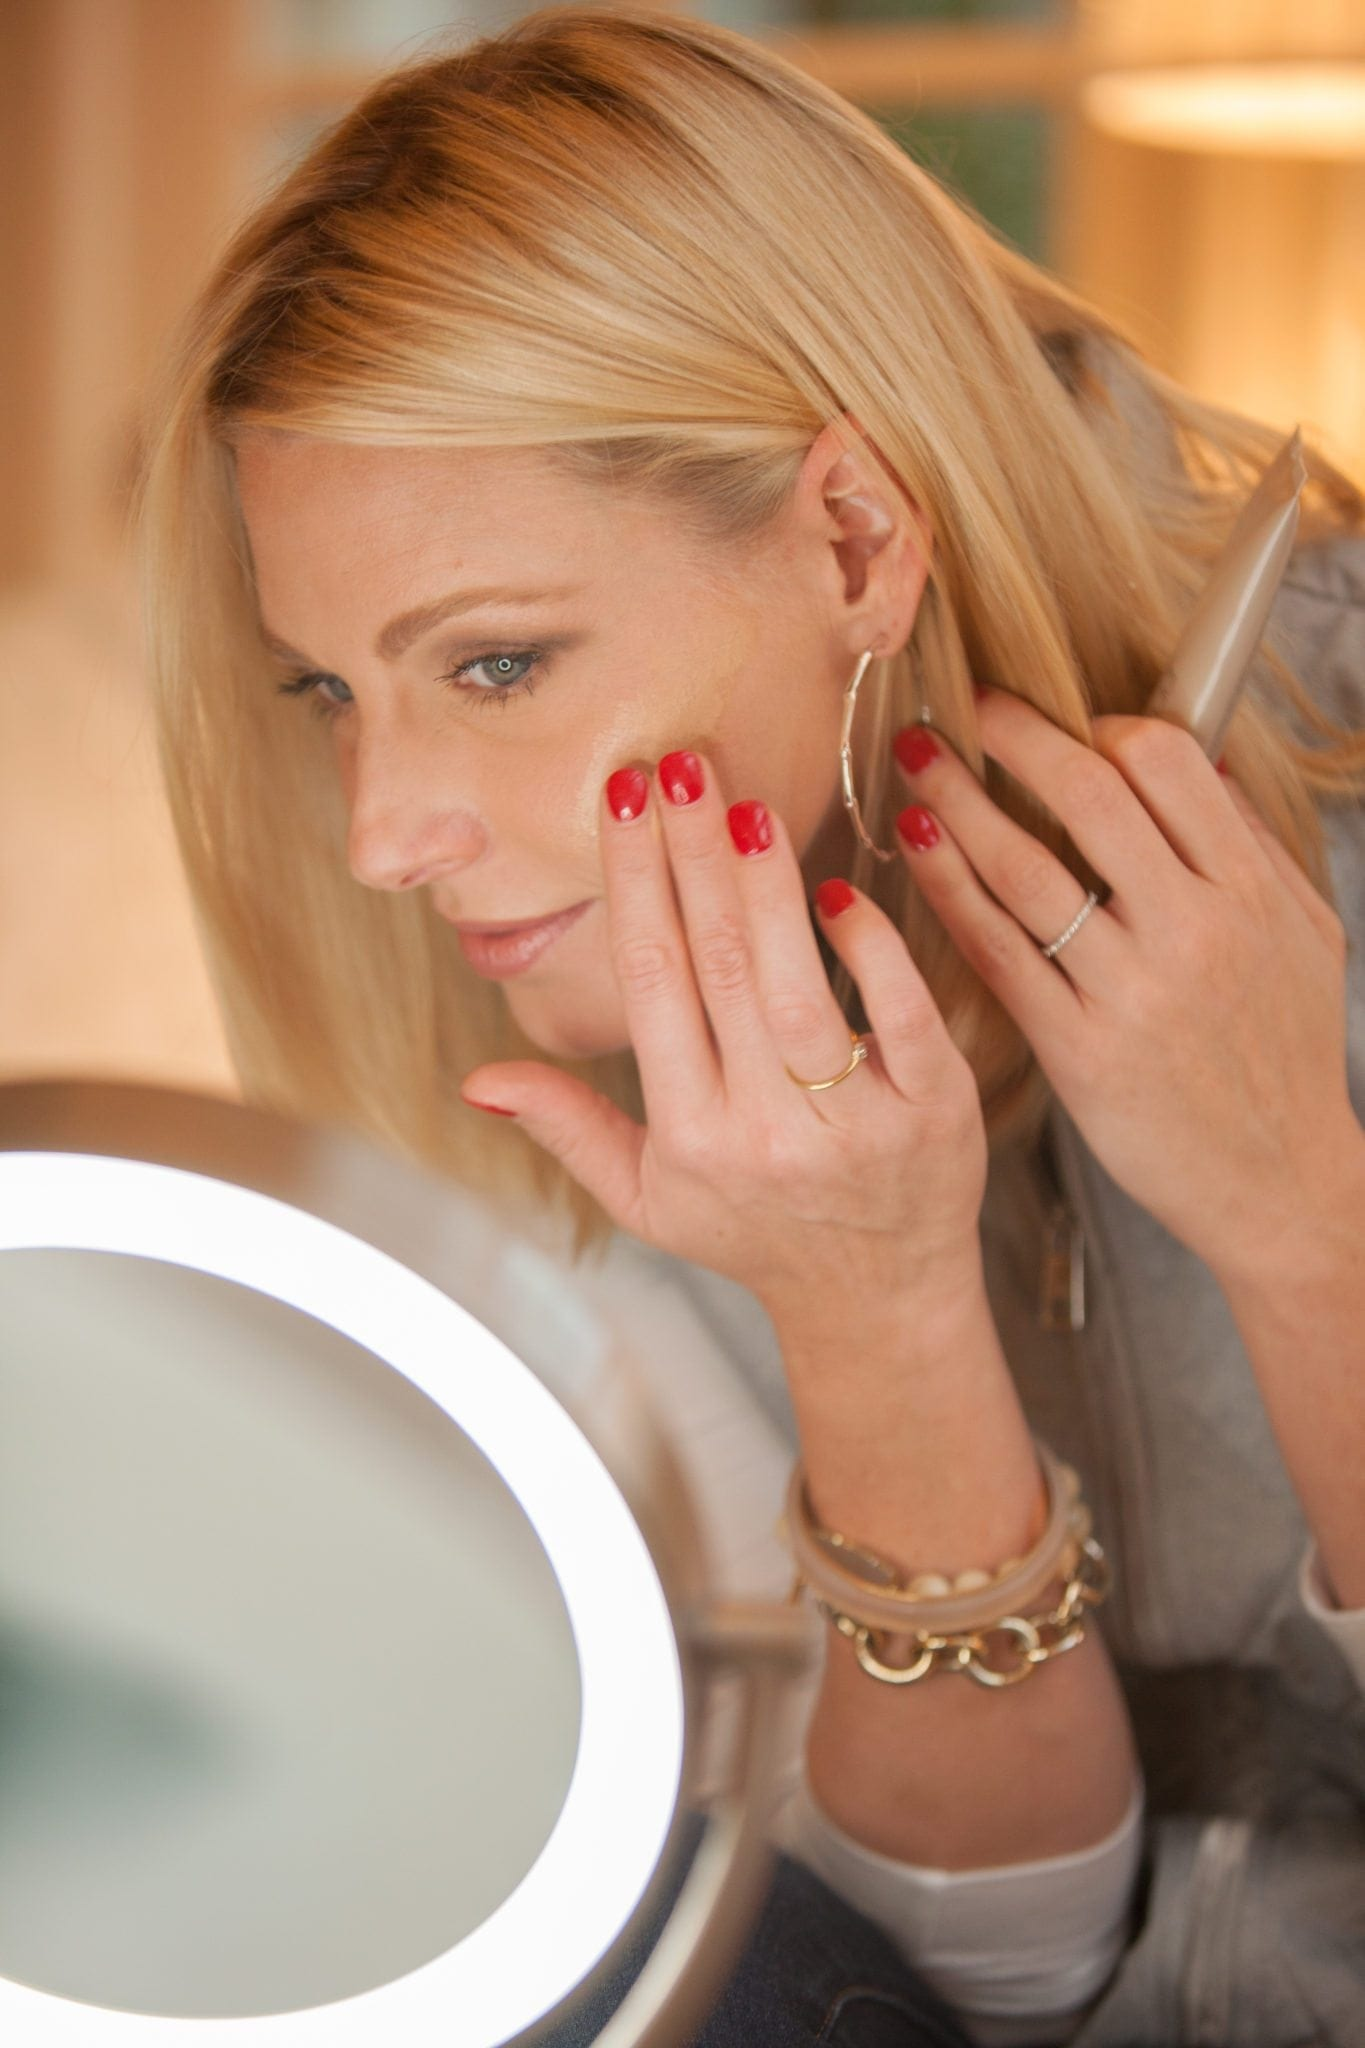 How to wear tinted moisturizer and what brands of tinted moisturizer work best.